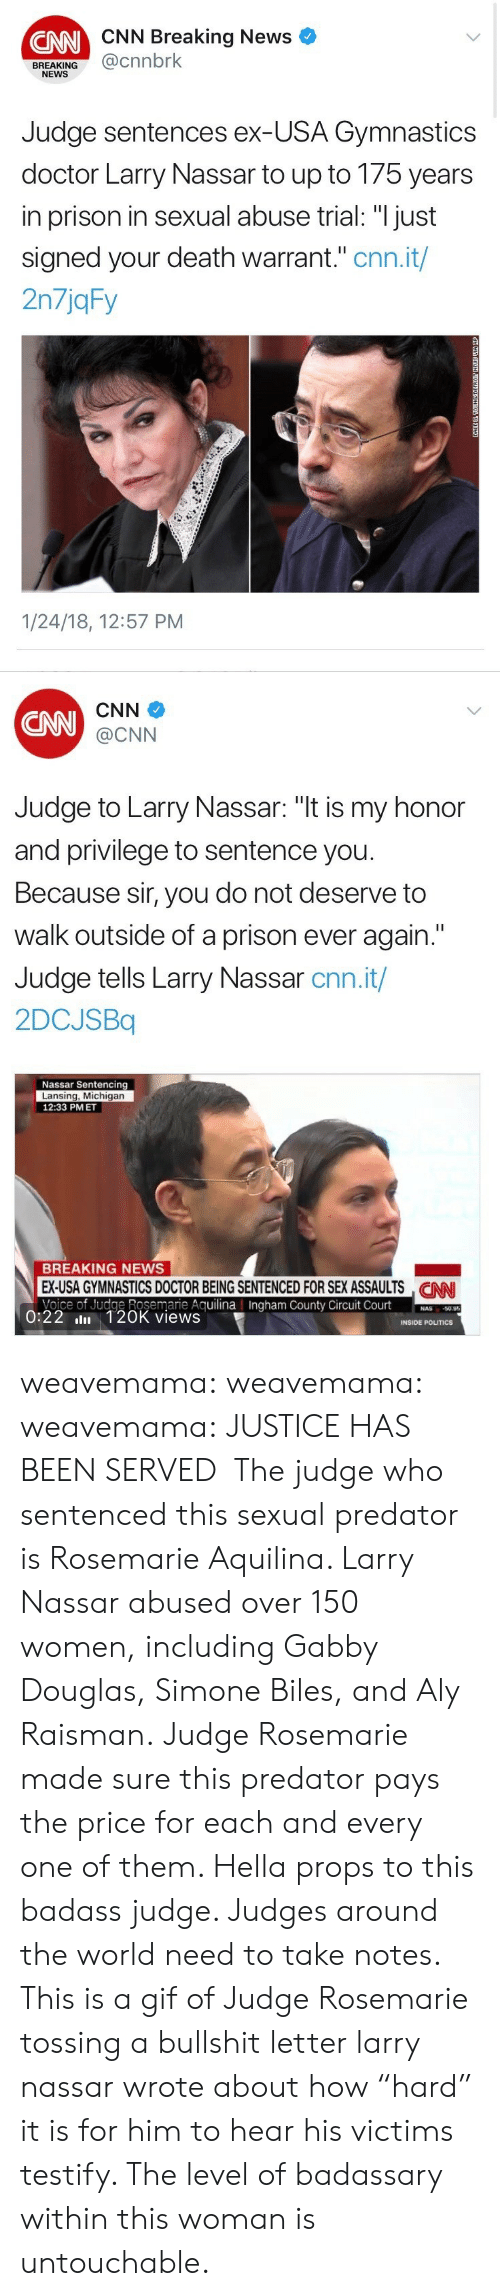 """Simone: CNN Breaking News  CNN  BREAKING@cnnbrk  NEWS  Judge sentences ex-USA Gymnastics  doctor Larry Nassar to up to 175 years  in prison in sexual abuse trial: """"I just  signed your death warrant."""" cnn.it/  2n7jqFy  1/24/18, 12:57 PM   CNN  CNN  @CNN  Judge to Larry Nassar: """"t is my honor  and privilege to sentence you  Because sir, you do not deserve to  walk outside of a prison ever again.""""  Judge tells Larry Nassar cnn.it/  2DCJSBq  Nassar Sentencing  Lansing, Michigan  12:33 PMET  BREAKING NEWS  EX-USA GYMNASTICS DOCTOR BEING SENTENCED FOR SEX ASSAULTS NN  Voice of Judge Rosemarie AguilinaIngham County Circuit Court0  CAN  County  50.95  0:22 